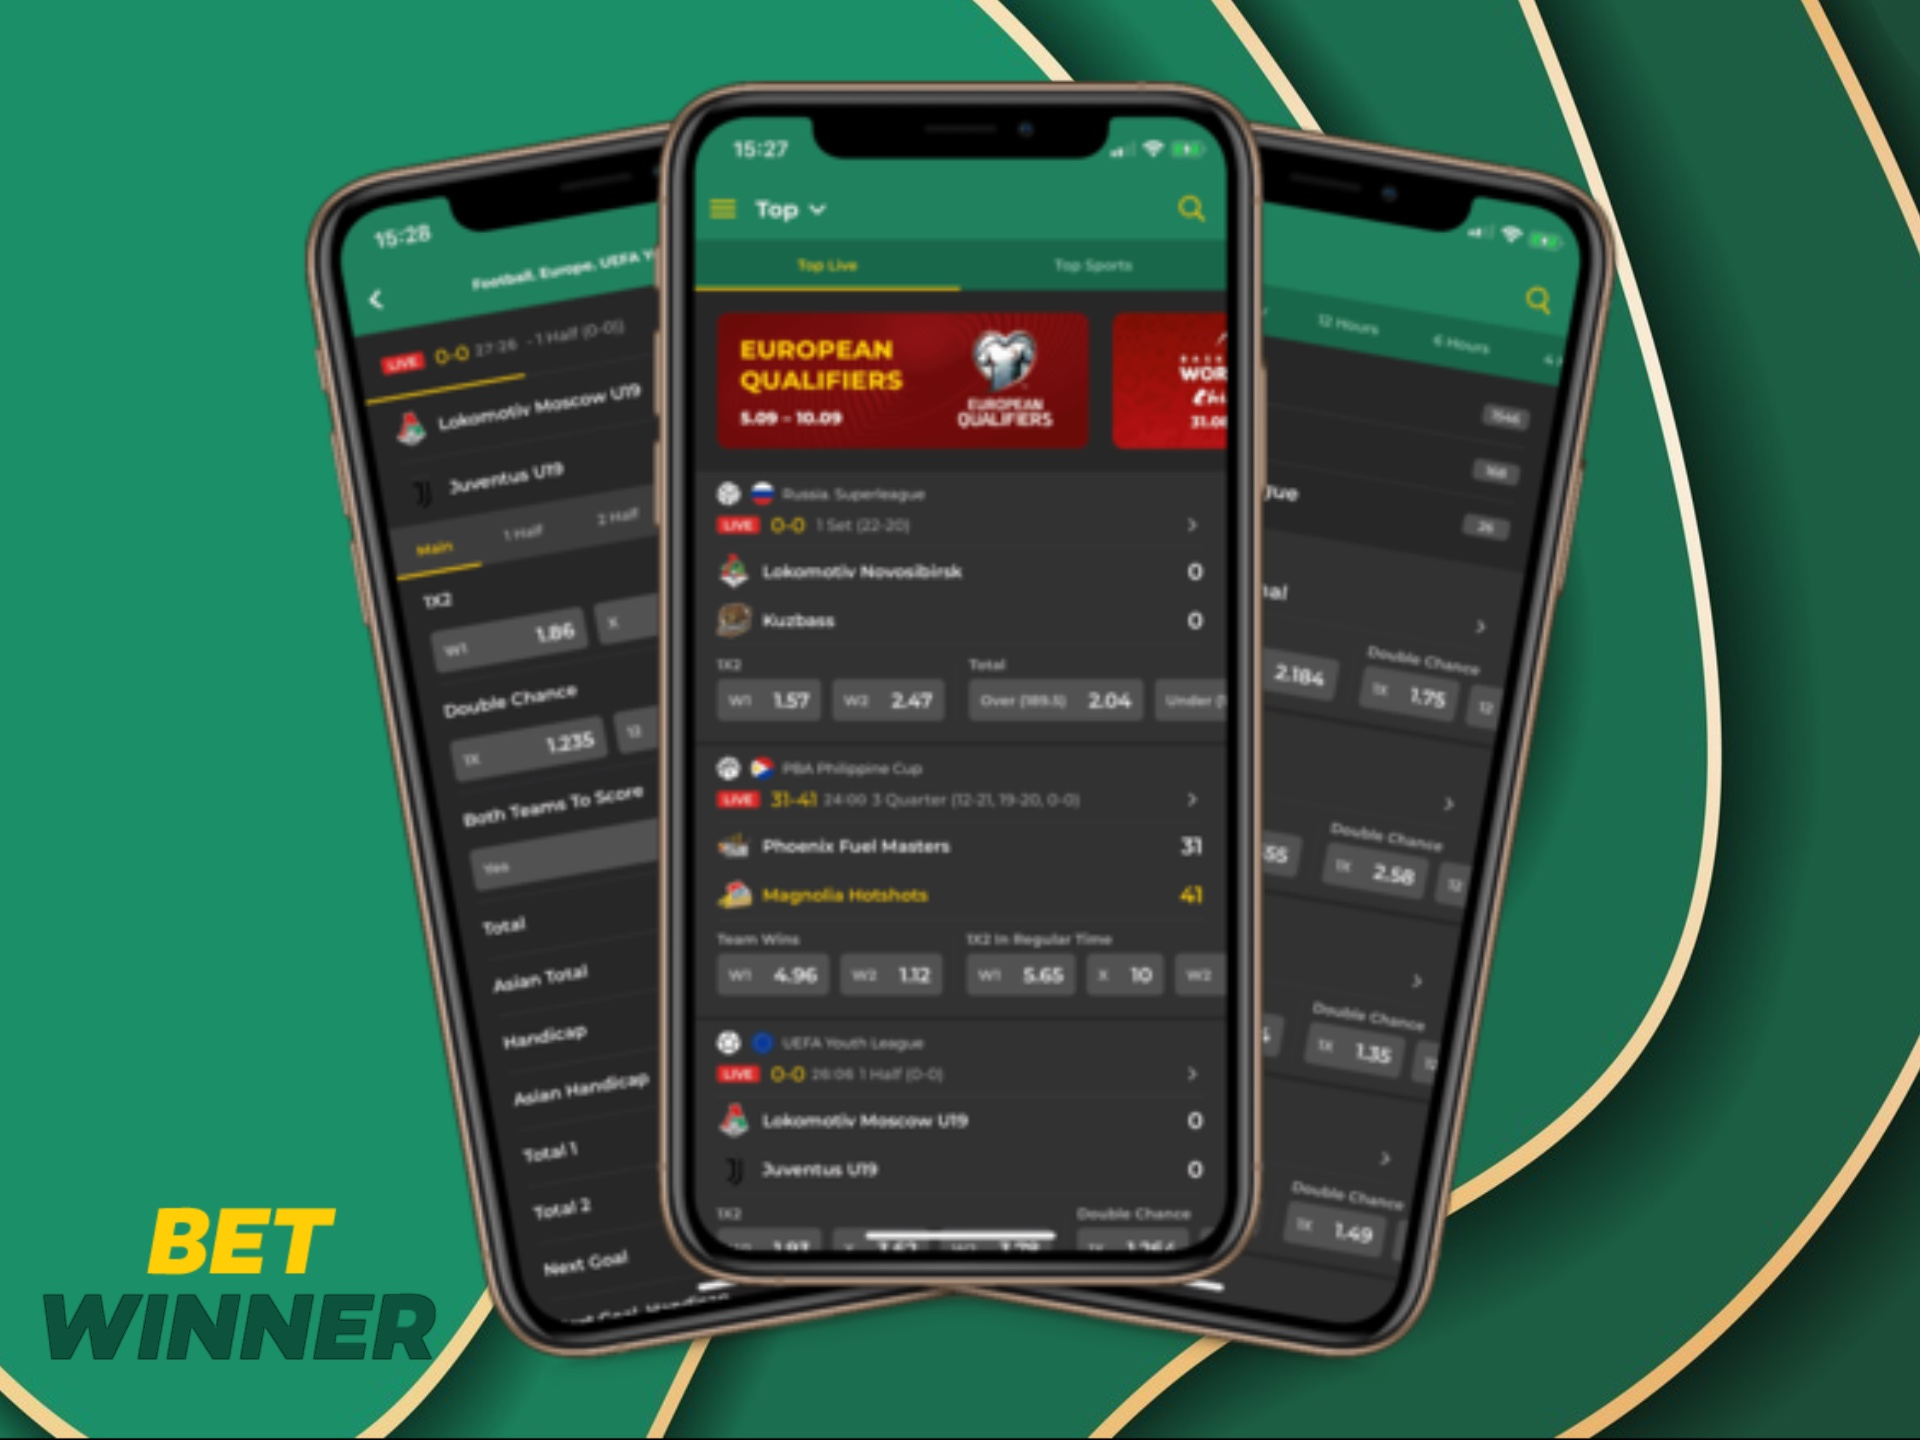 Install the Betwinner app on your Android phone to place bets easily.